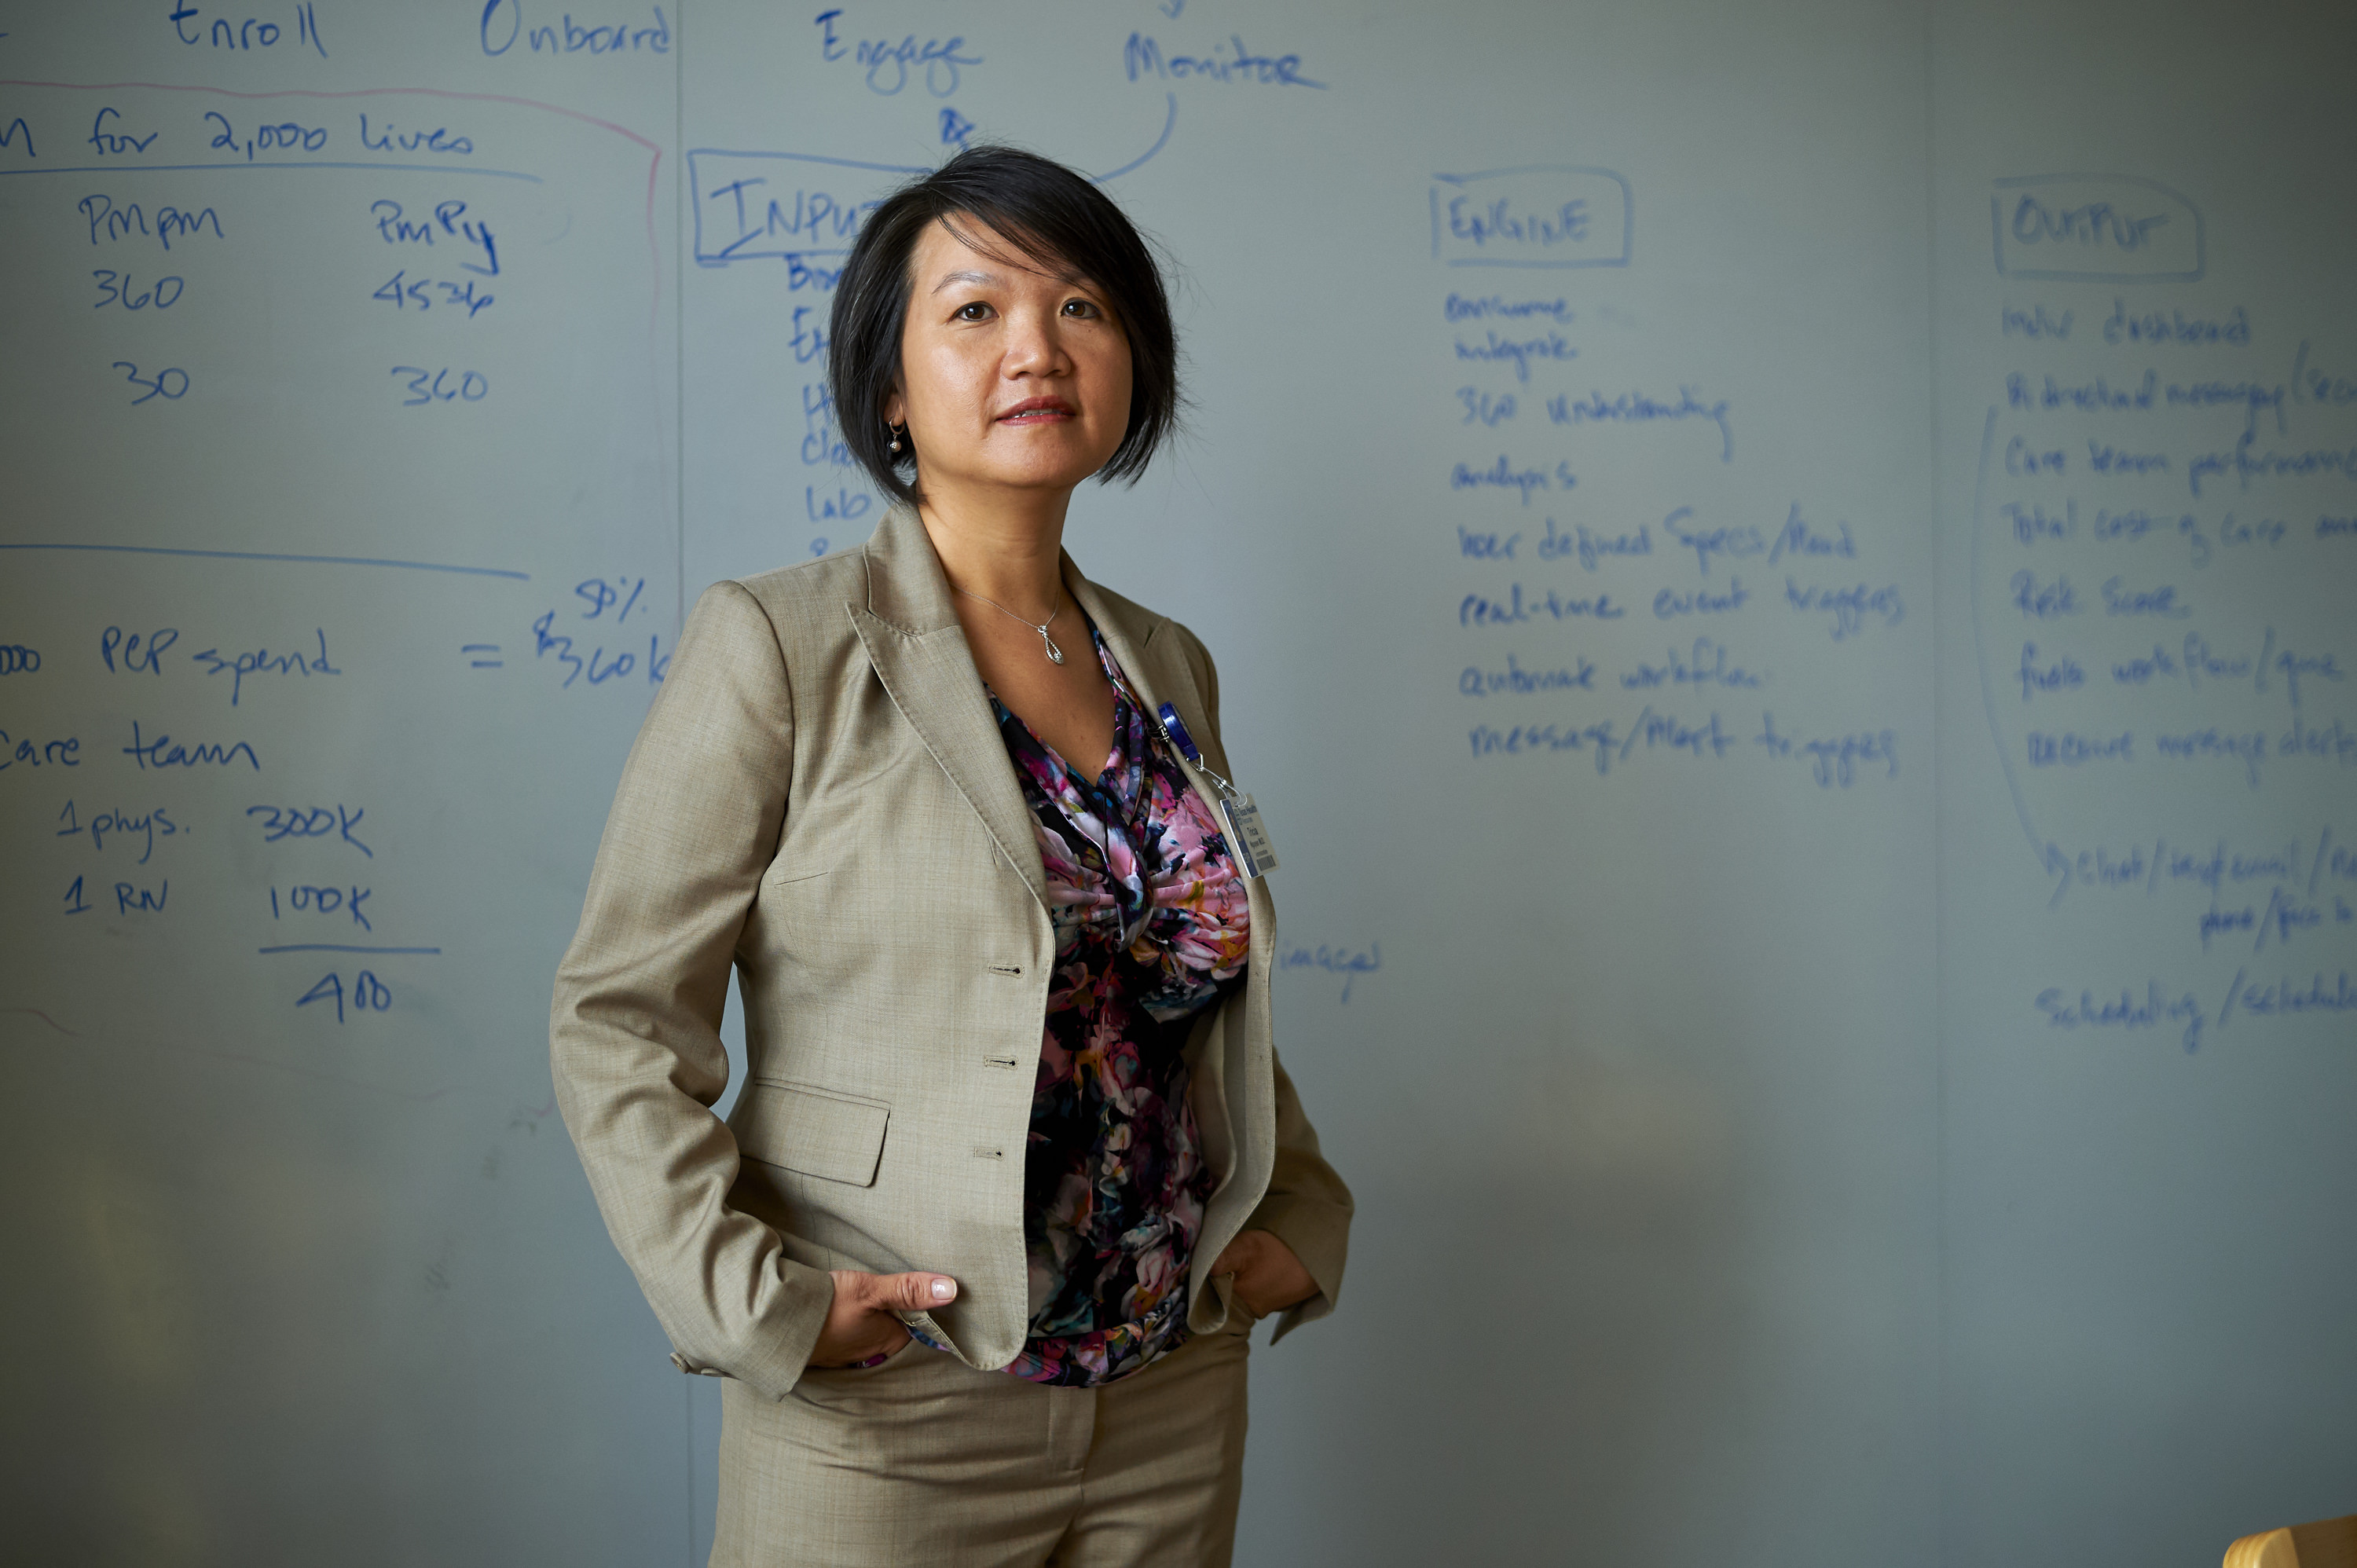 Dr. Tricia Nguyenfor HealthLeaders Magazine